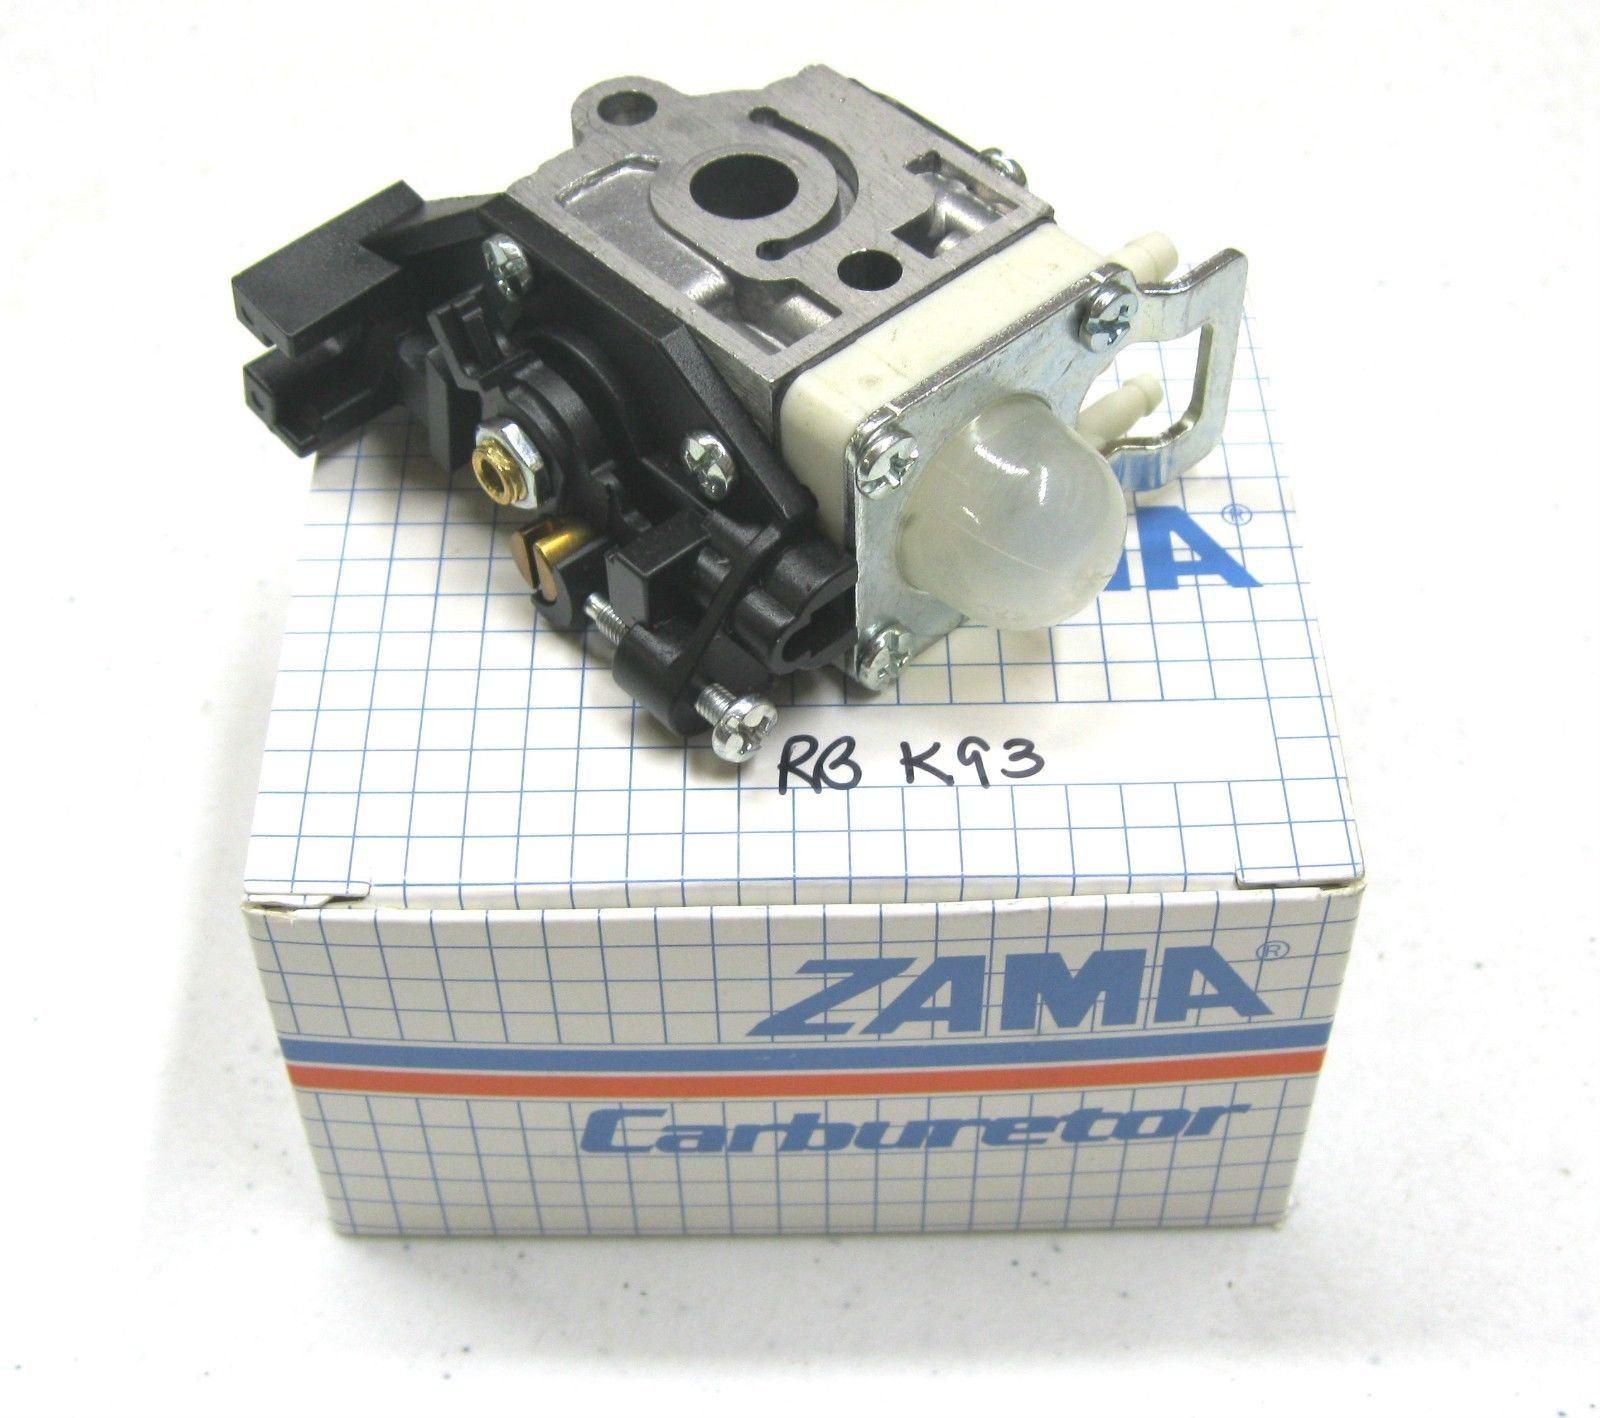 New OEM Zama RB-K93 CARBURETOR Carb for Echo PAS-225 Power Head / String Trimmer supplier_id_theropshop, #UGEIO32251469589113